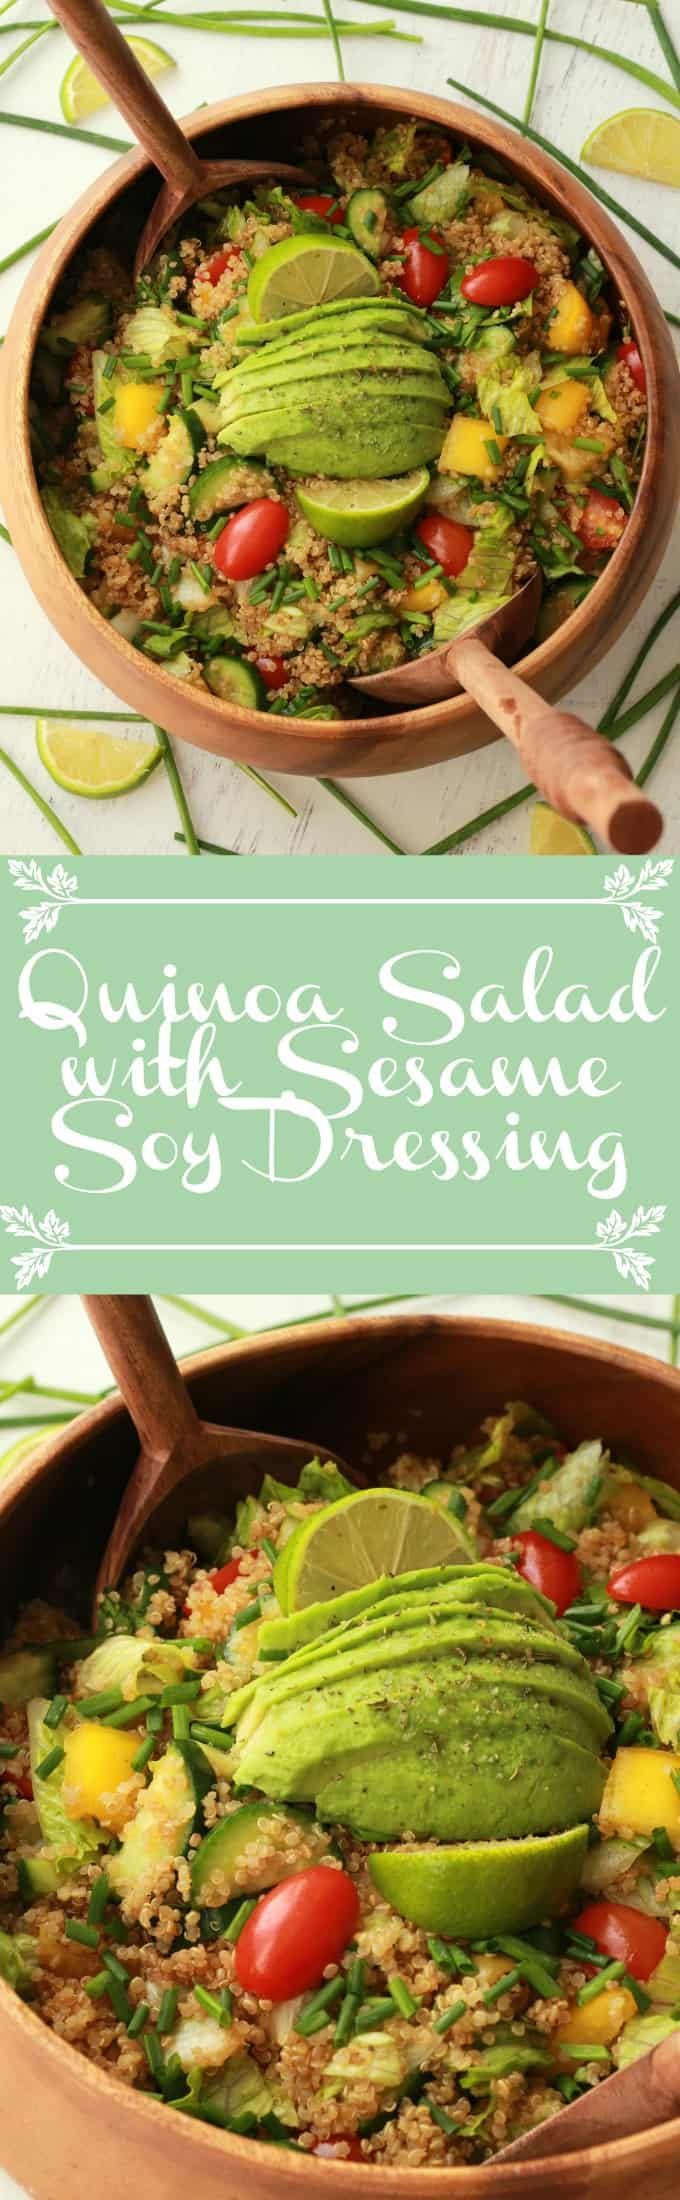 Fabulously healthy Quinoa Salad with Sesame Soy Dressing. Vegan and Gluten-free! Vegan | Gluten-Free | Vegan Food | Vegan Recipes | Vegan Salad | lovingitvegan.com